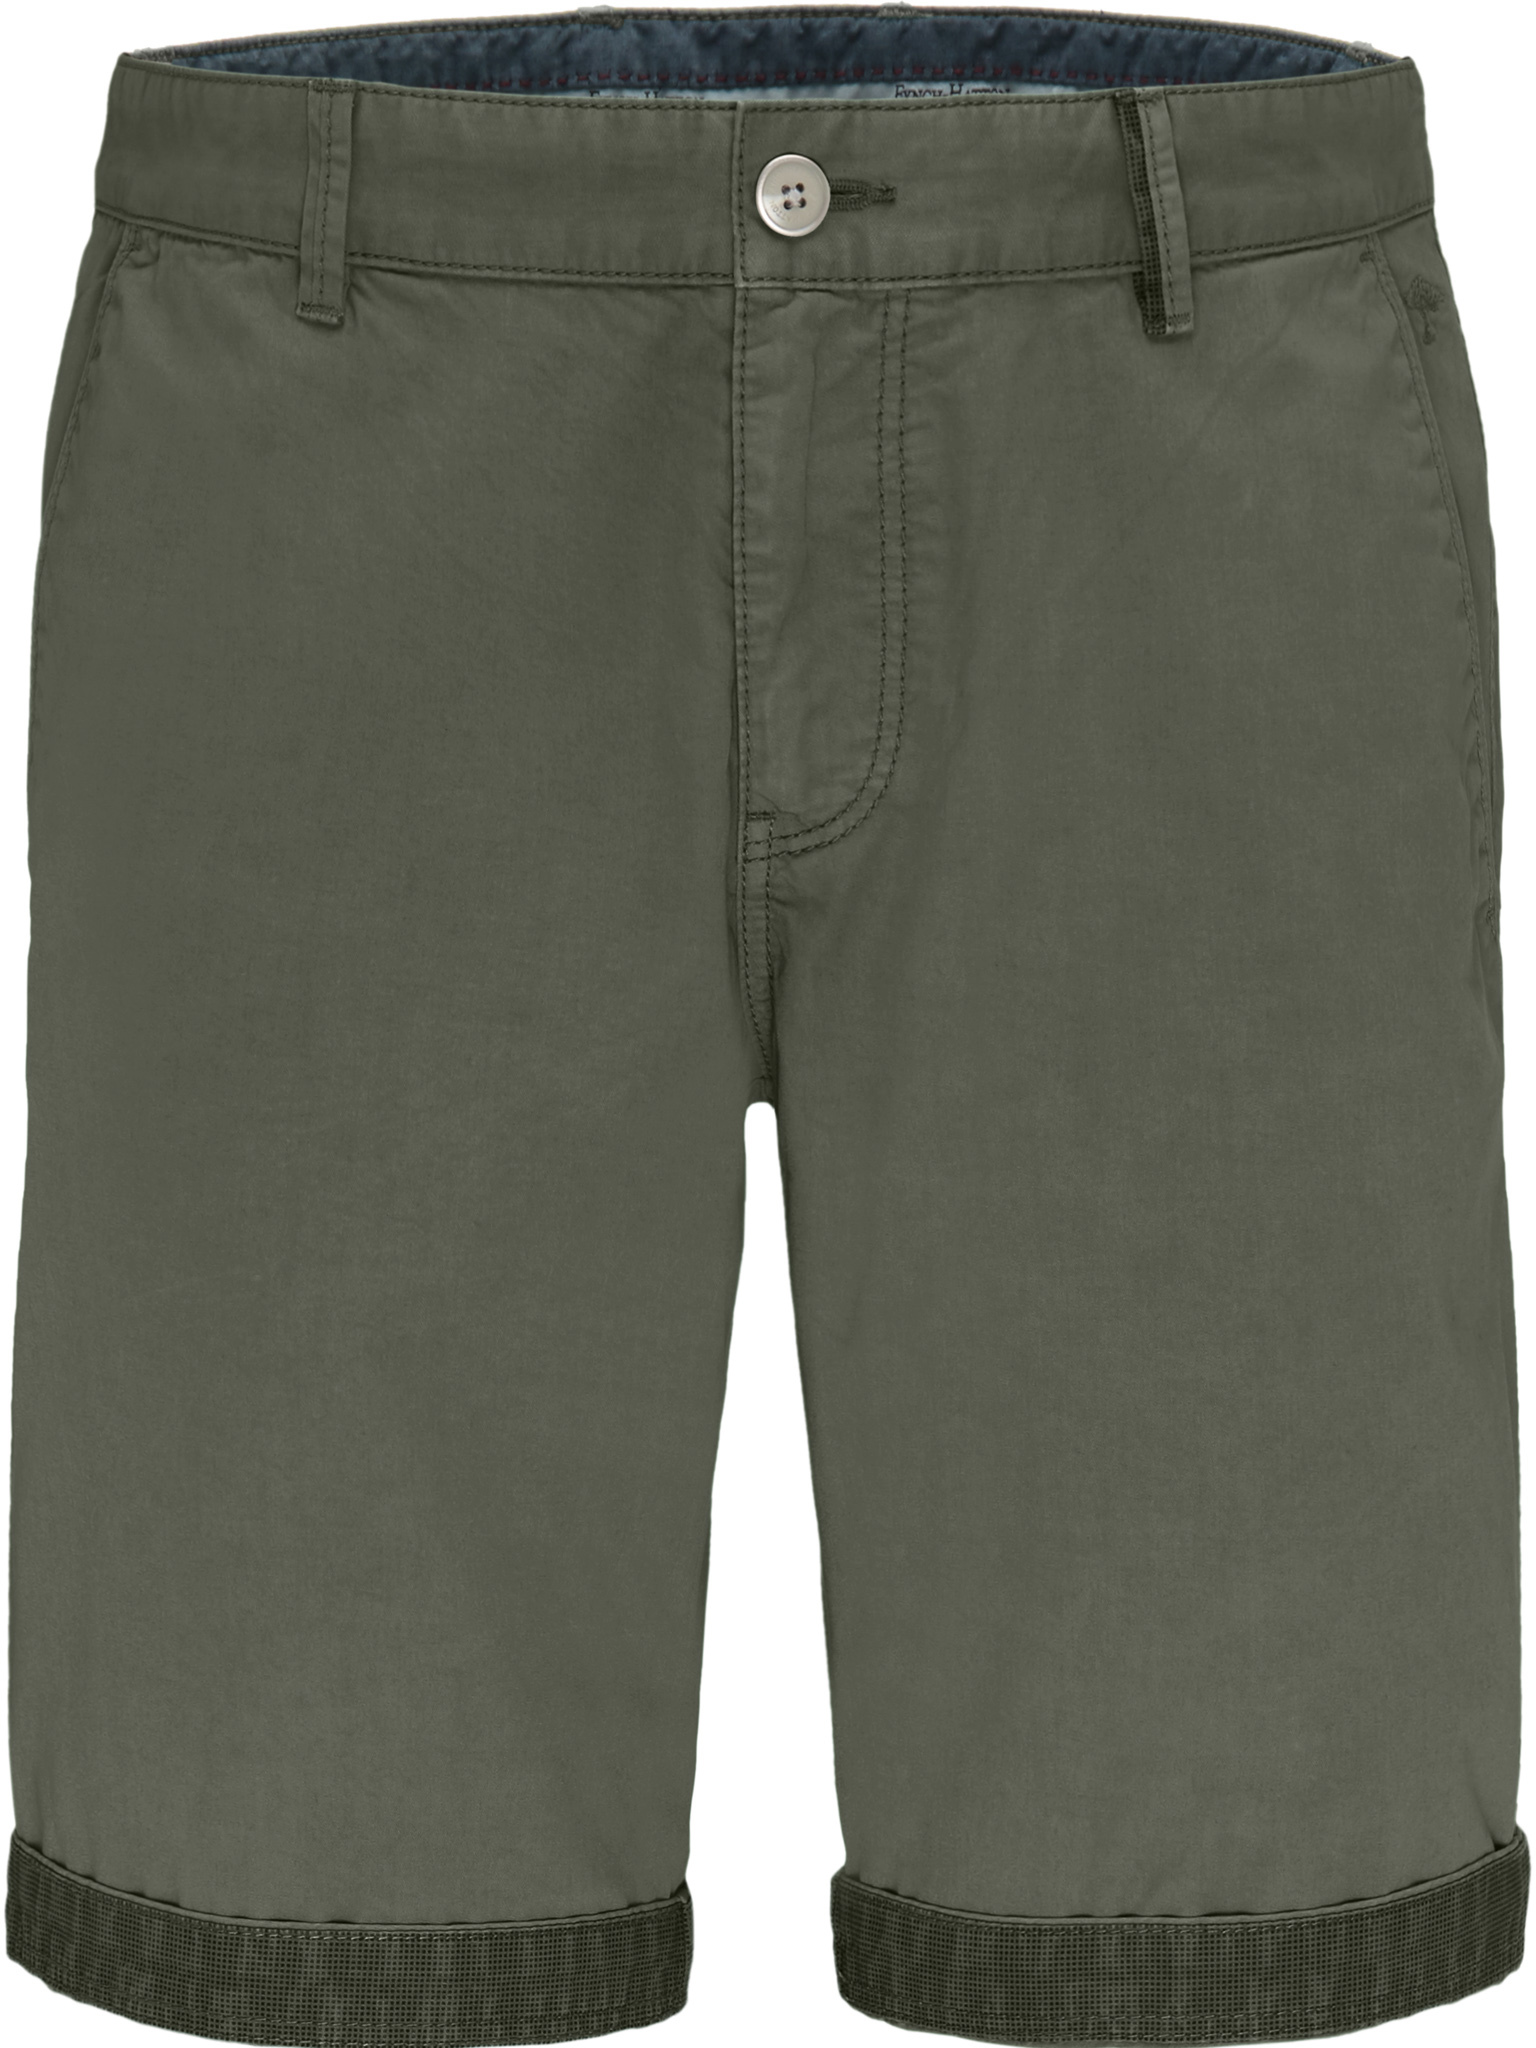 Fynch Hatton semi-taylored smart shorts in olive